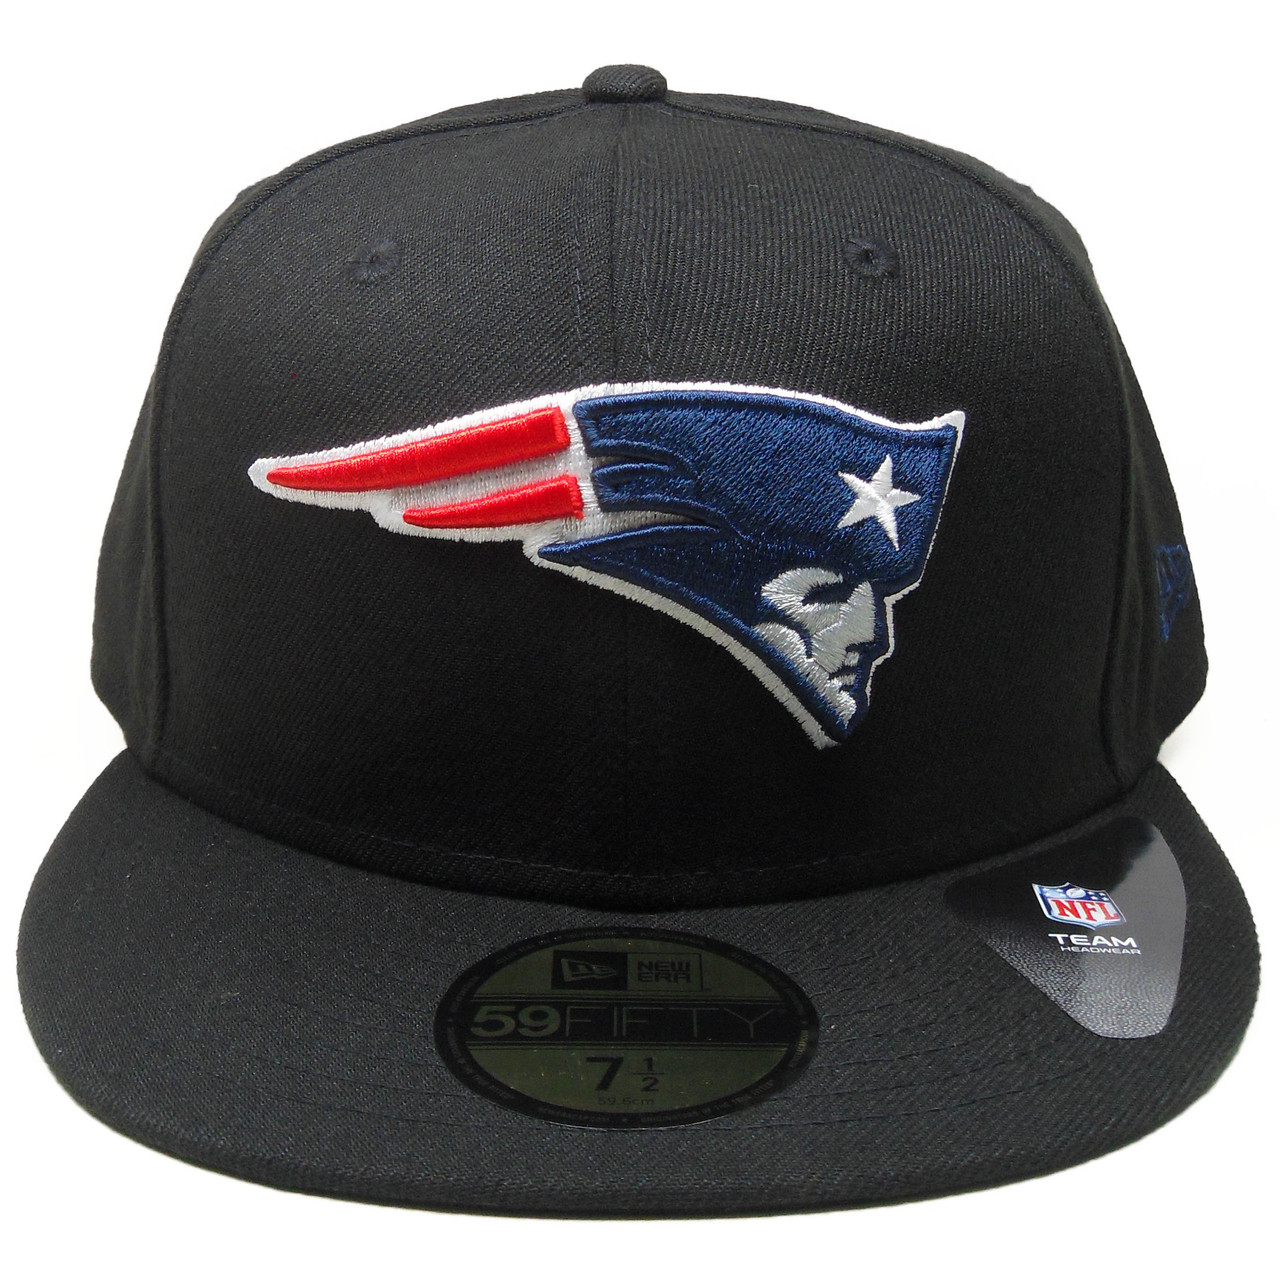 New England Patriots New Era 59Fifty Fitted Hat - Black a096d8c584d